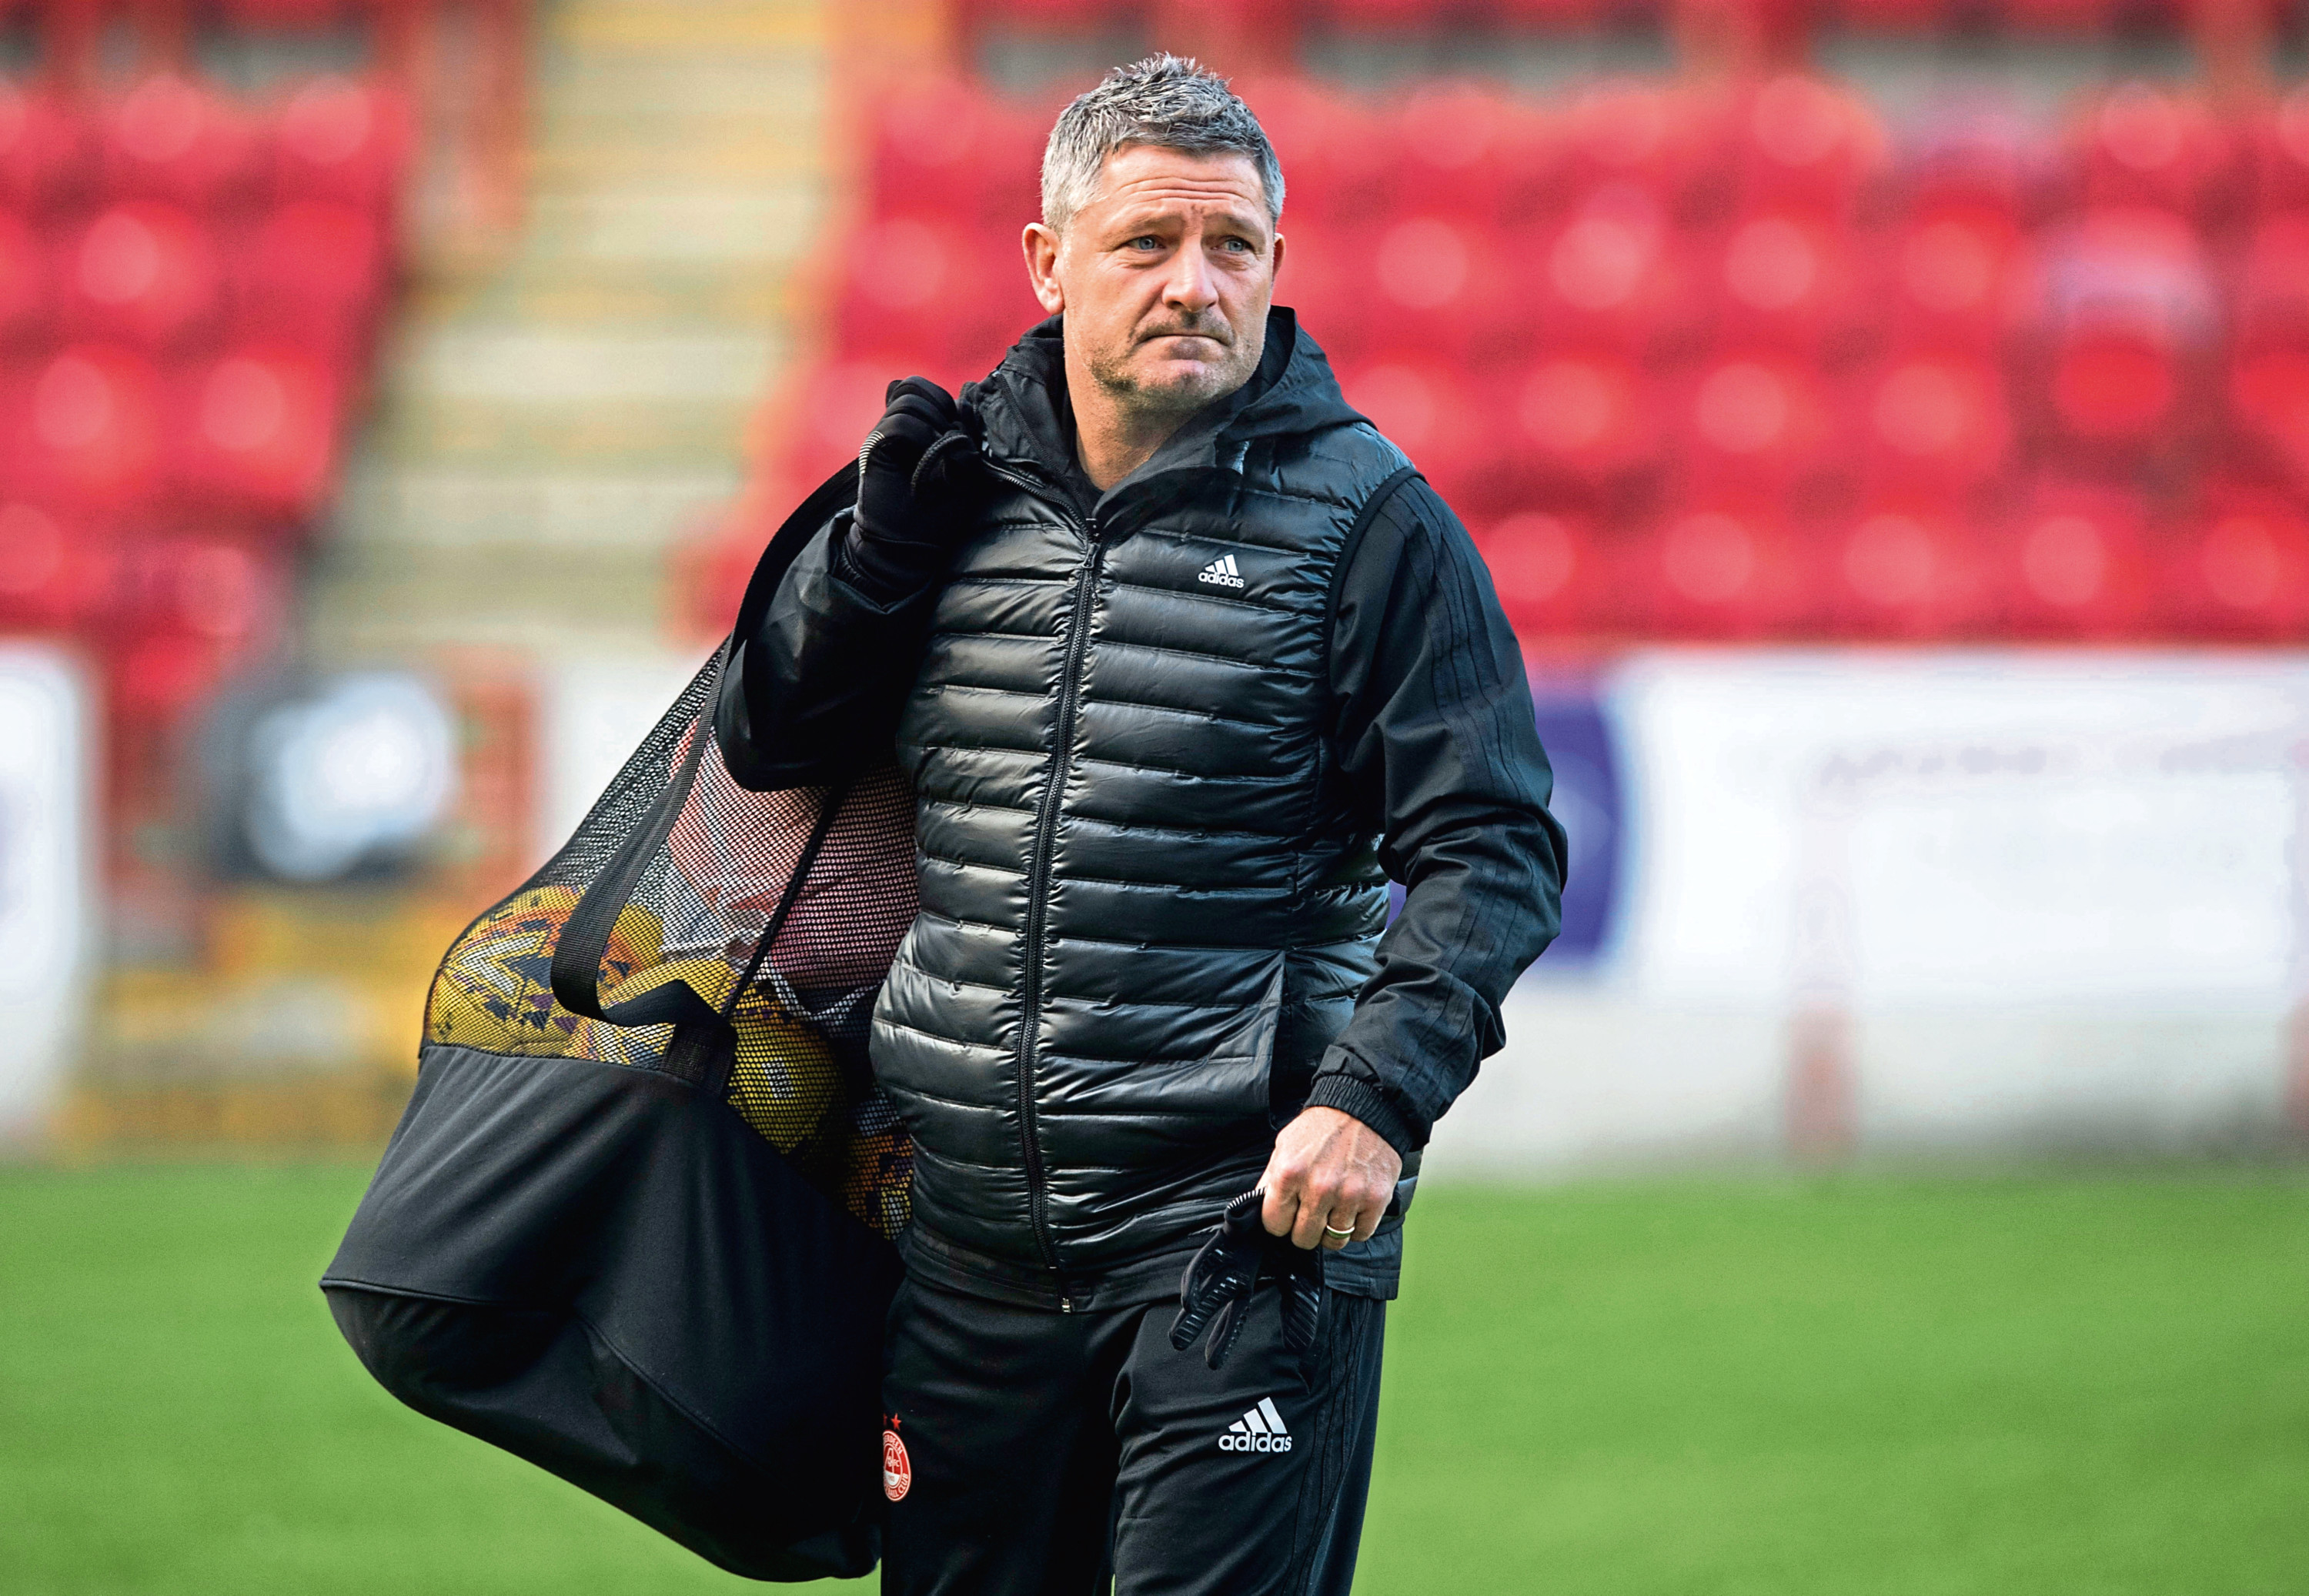 Aberdeen assistant manager Tony Docherty.